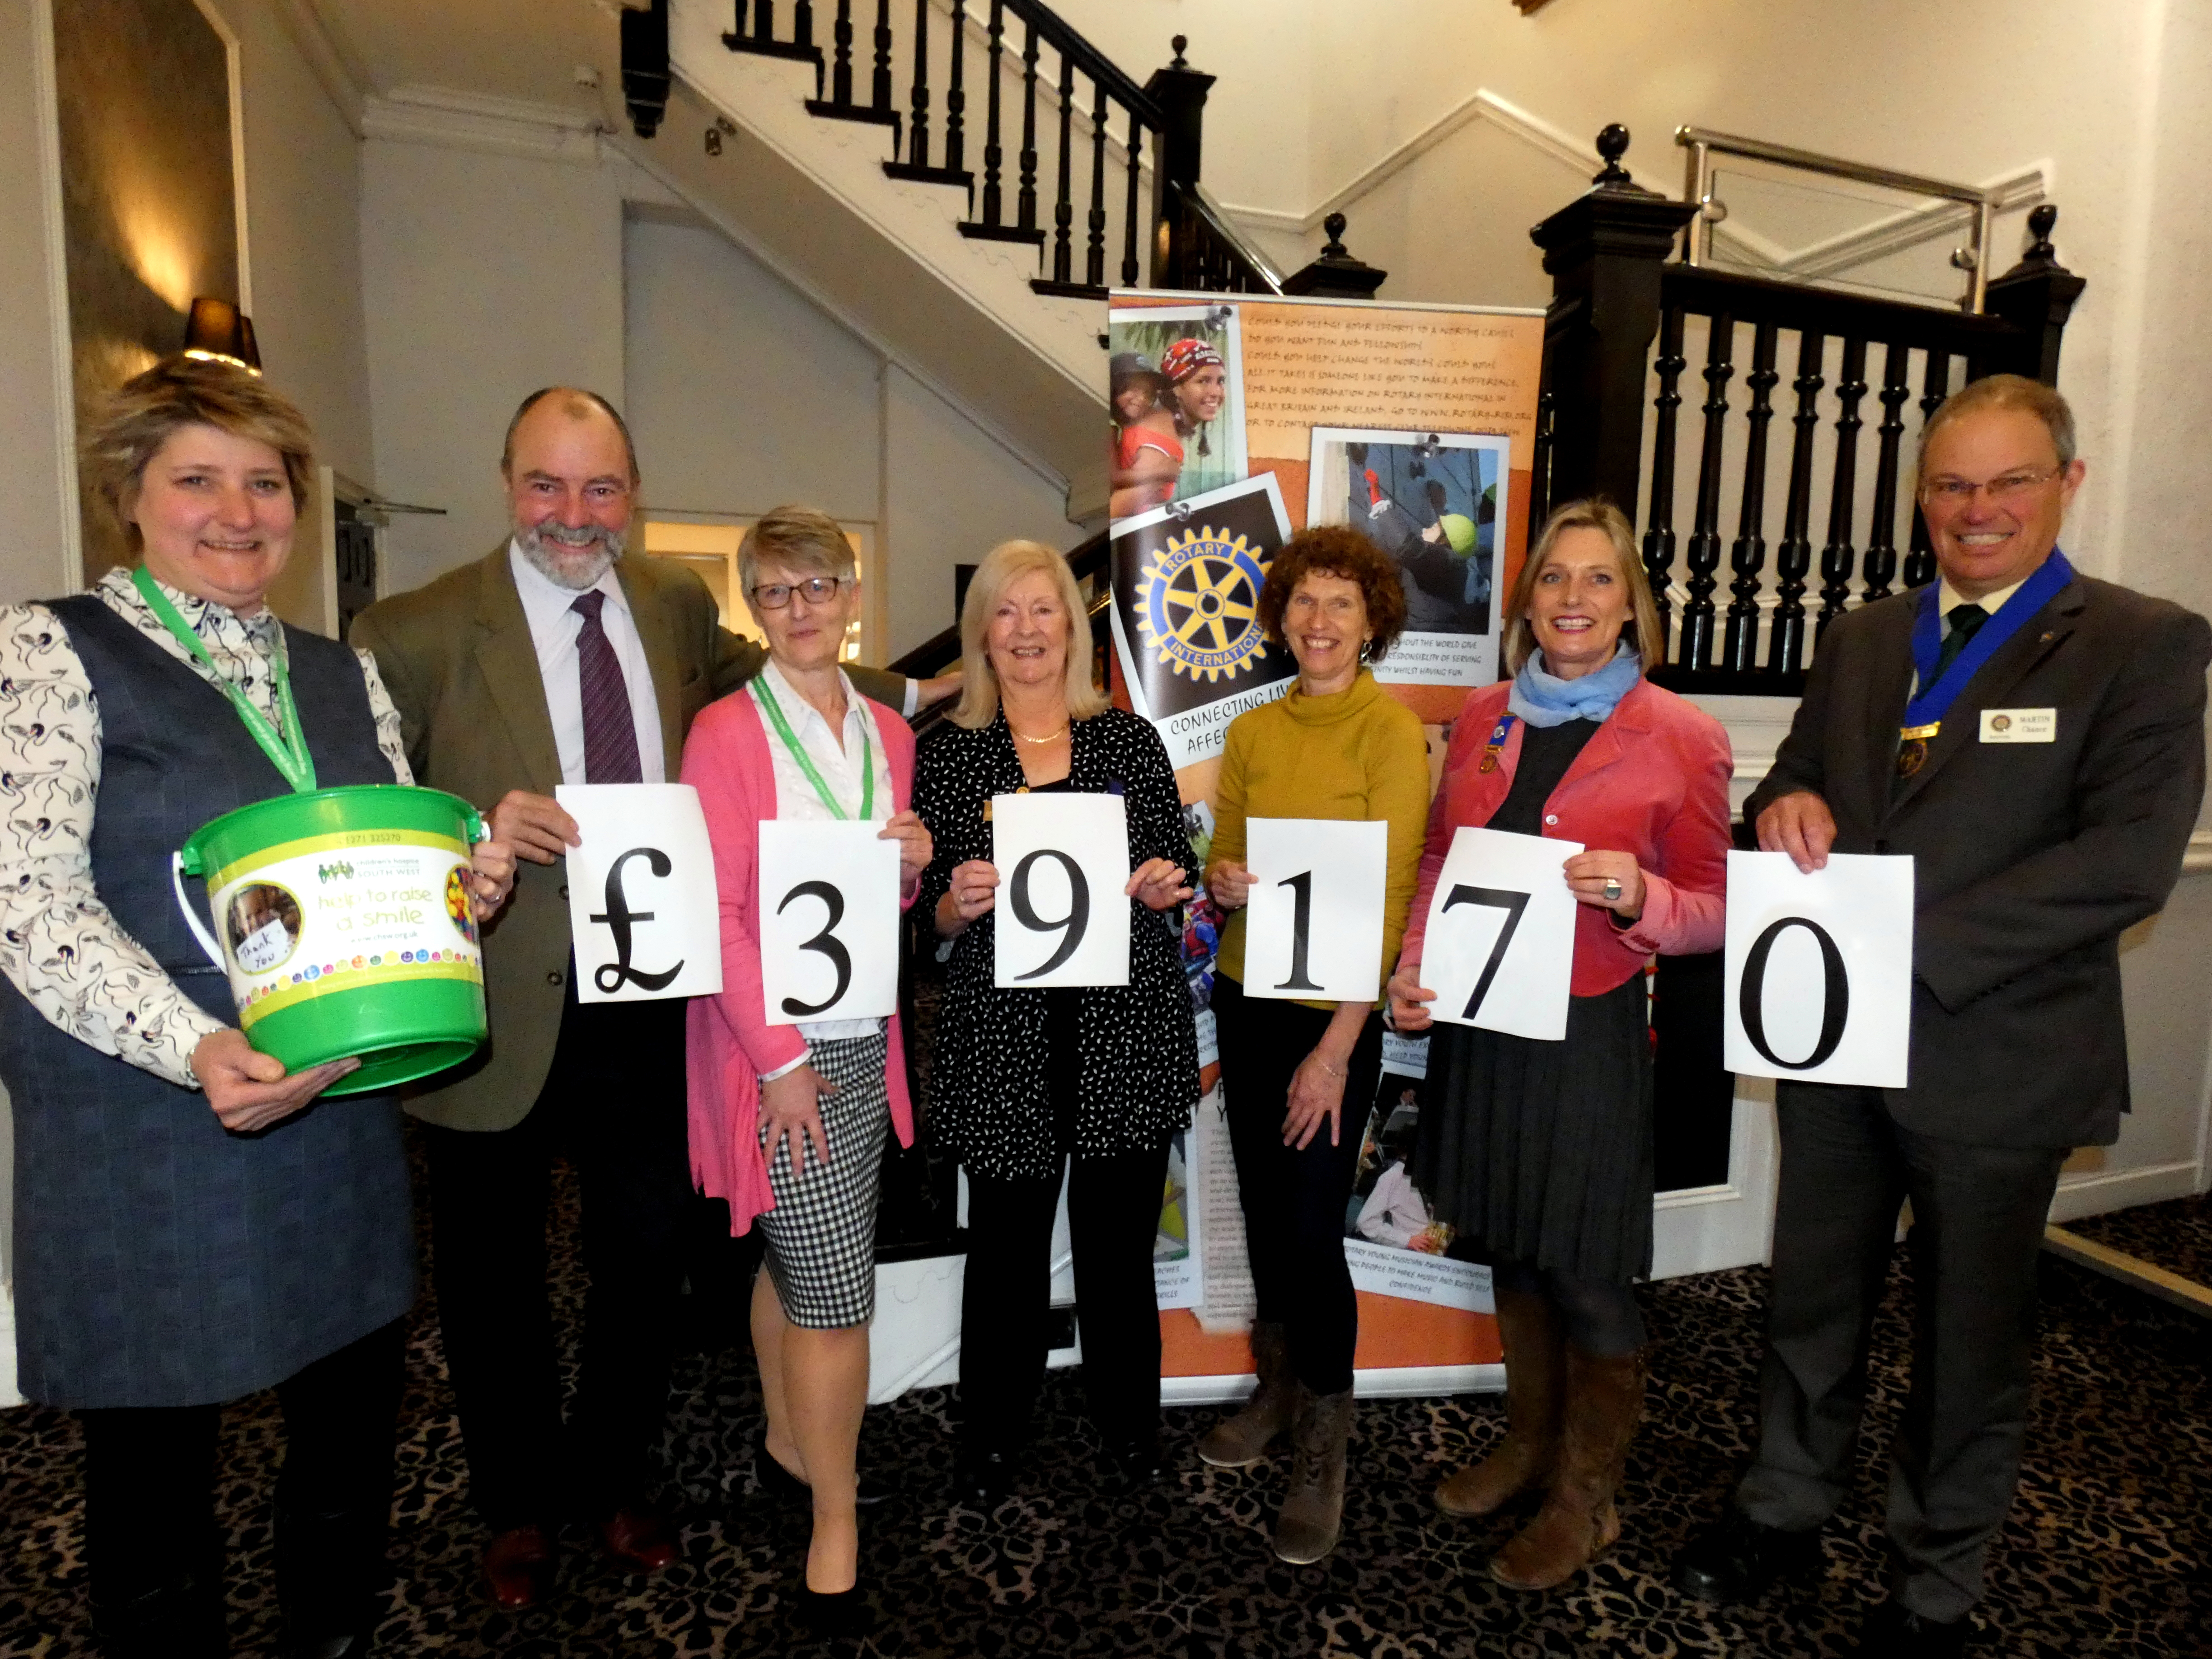 Picture by Grahem Hobbs: Cheque presentation to CHSW